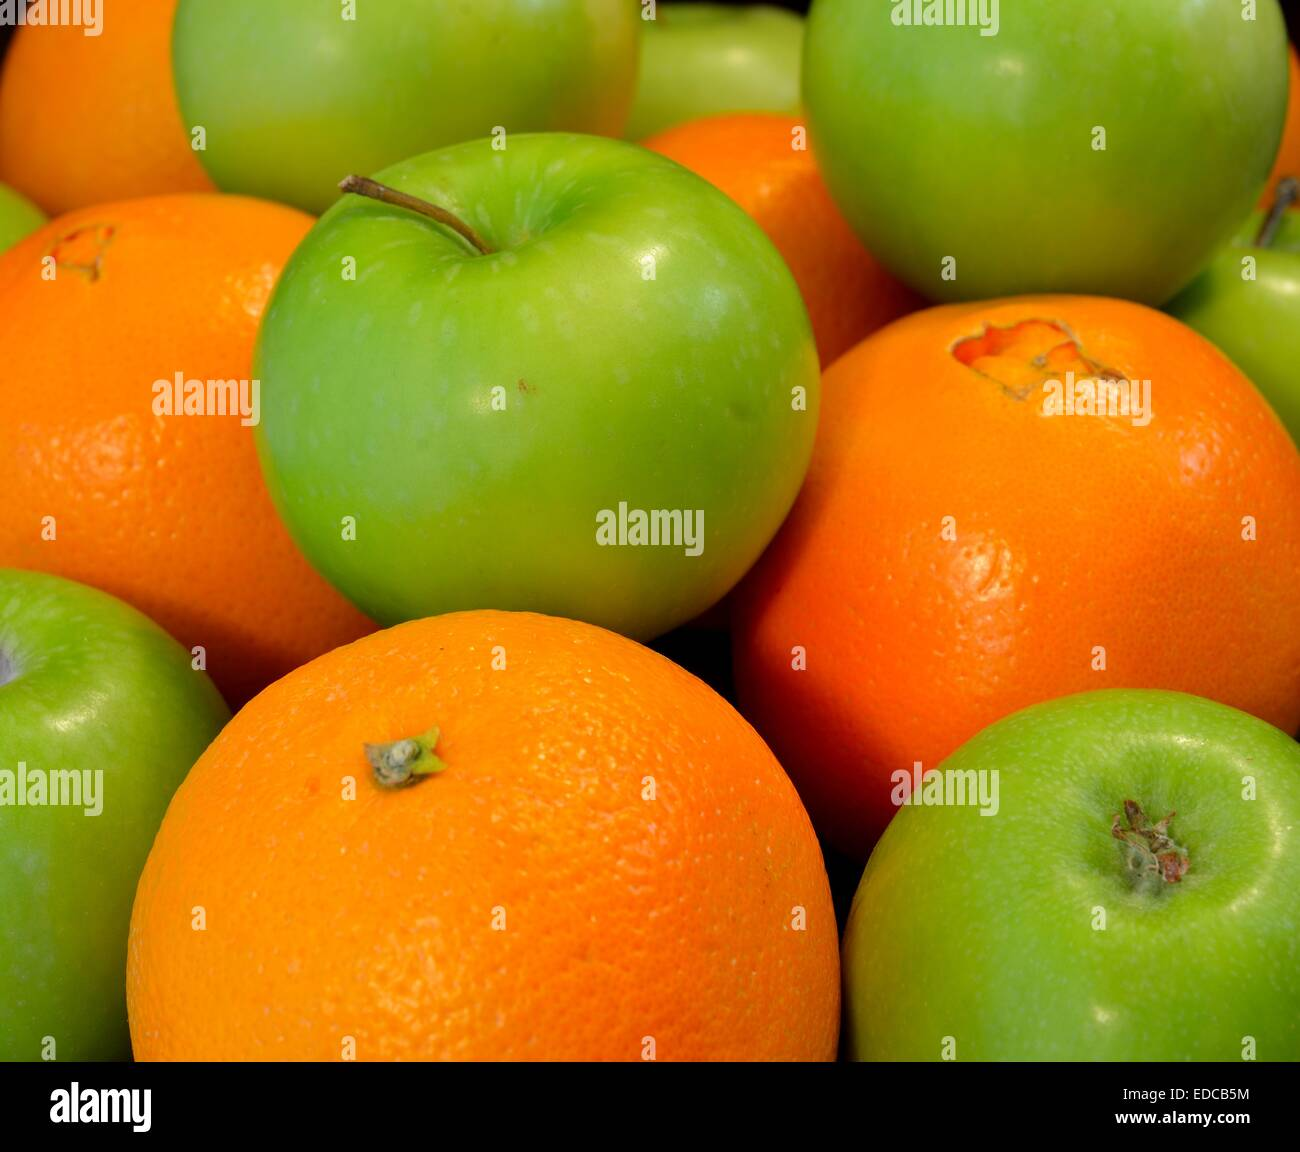 Apples and Orangers: A Comparison - Stock Image